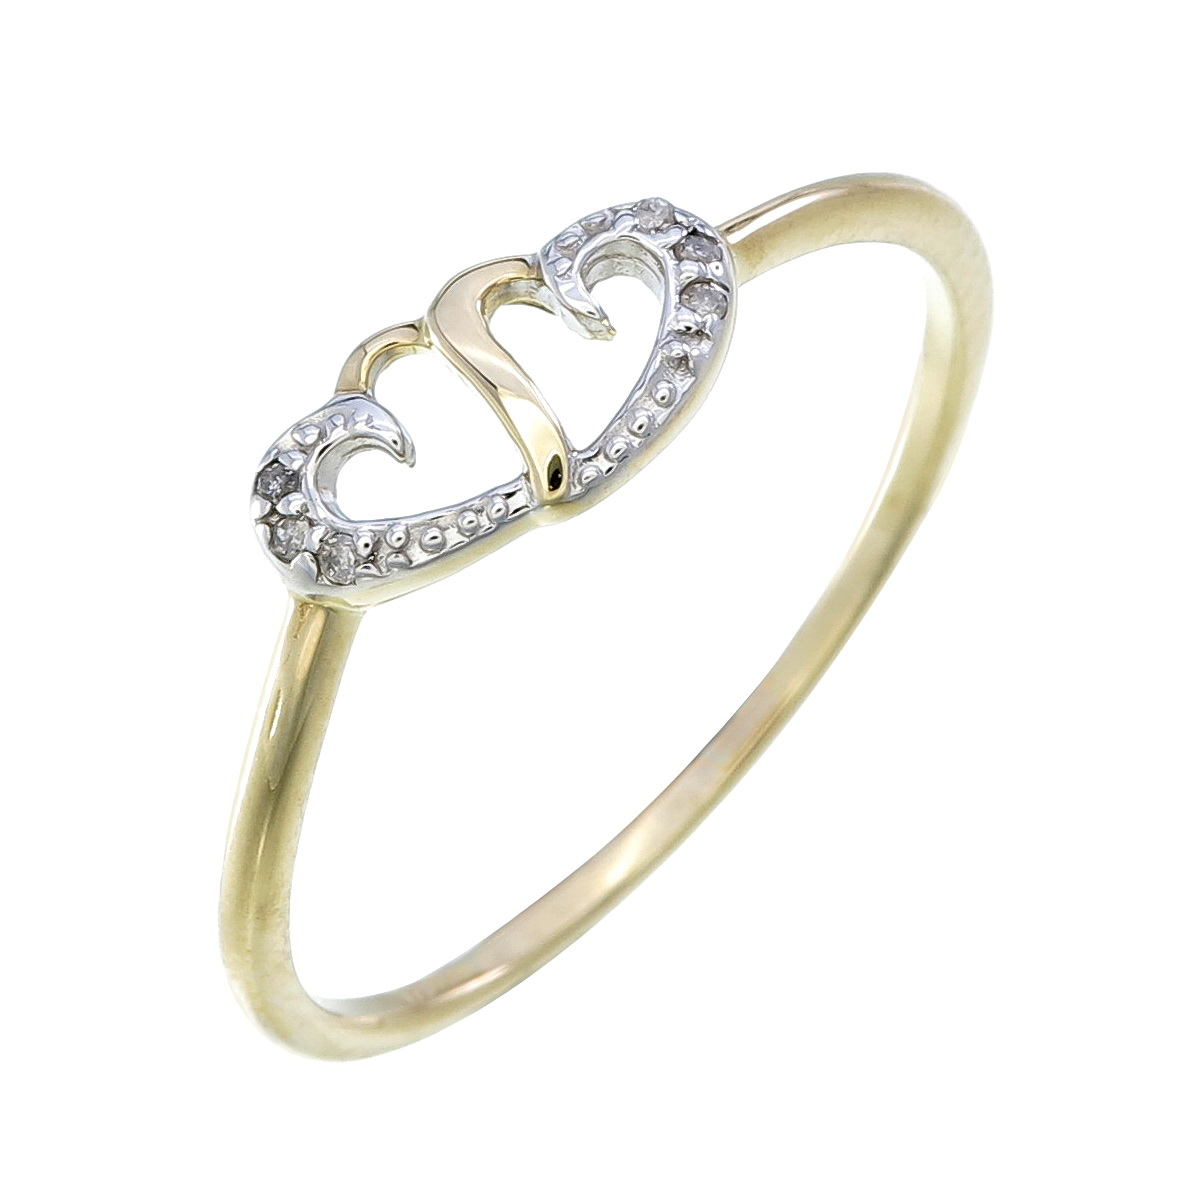 Heart ring set with with diamonds 0.02 Carats T.W. - in 10K yellow gold